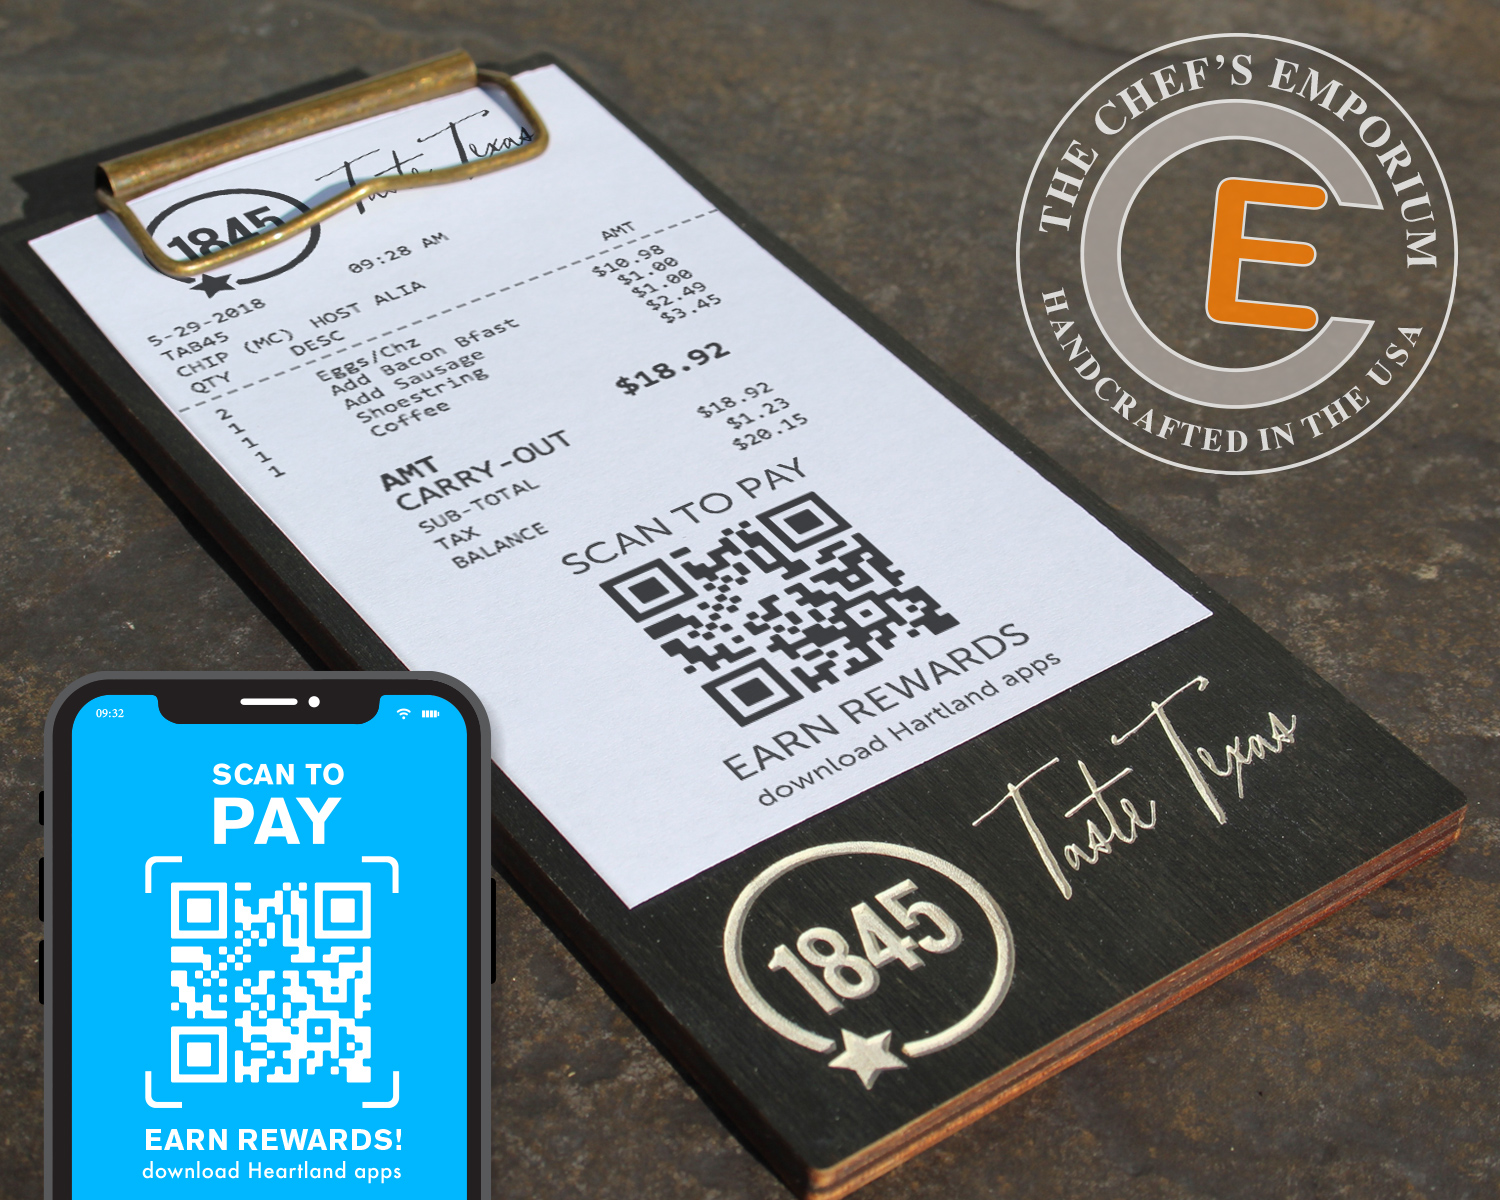 Restaurant Check Holder Touchless Scan to Pay - #restaurantrecovery